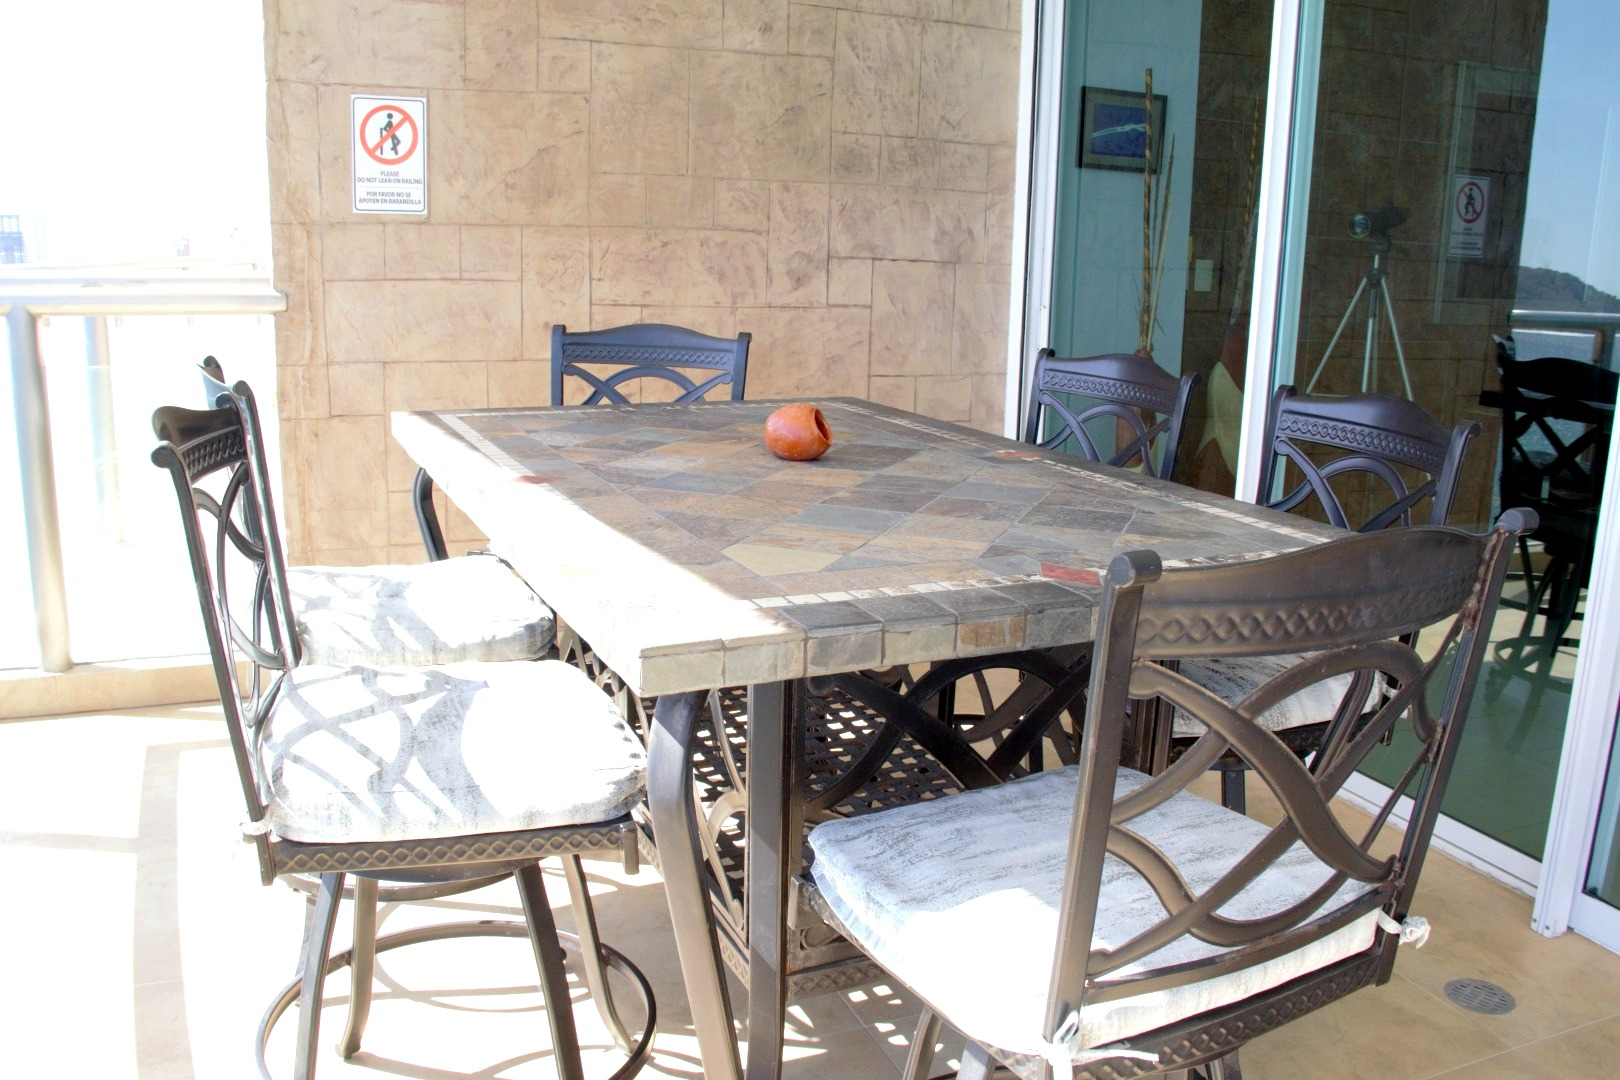 Exterior dining table for 6 people.